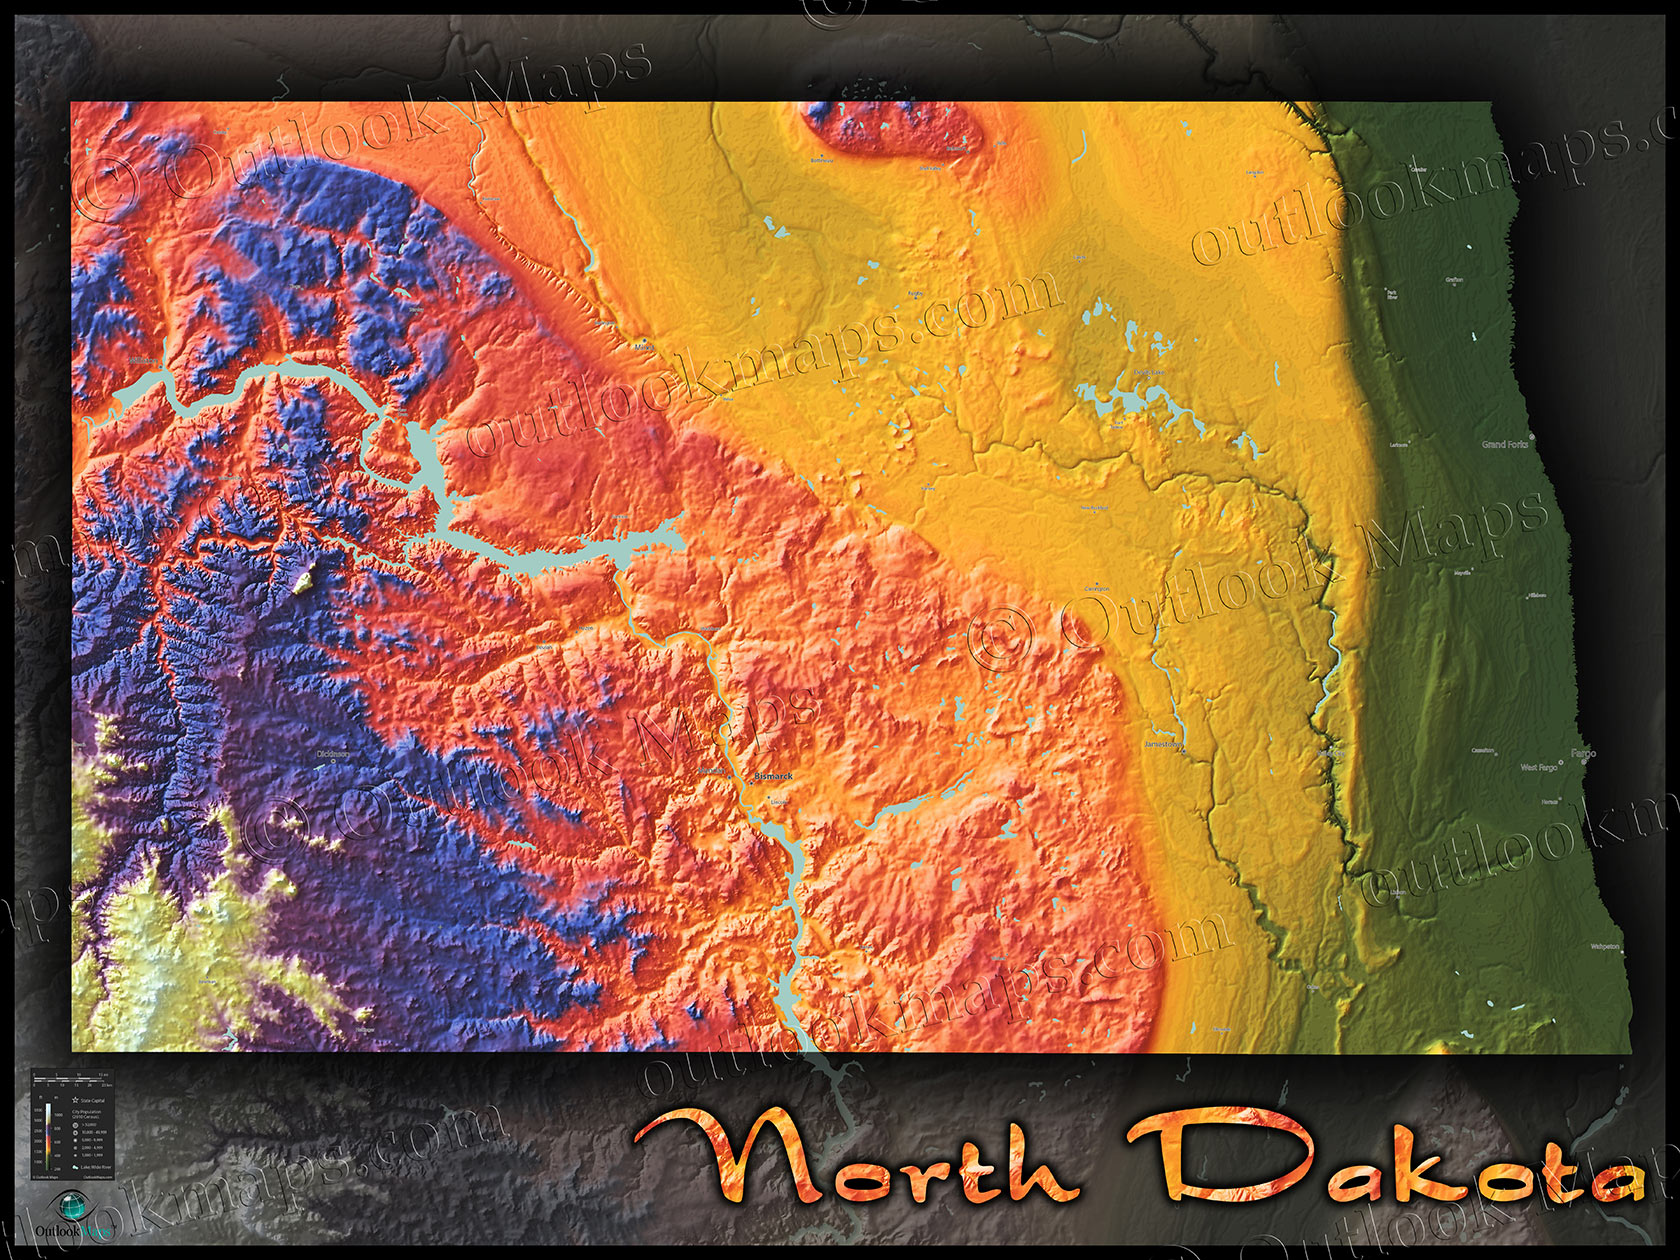 North Dakota Map | Colorful Topography of Physical Features